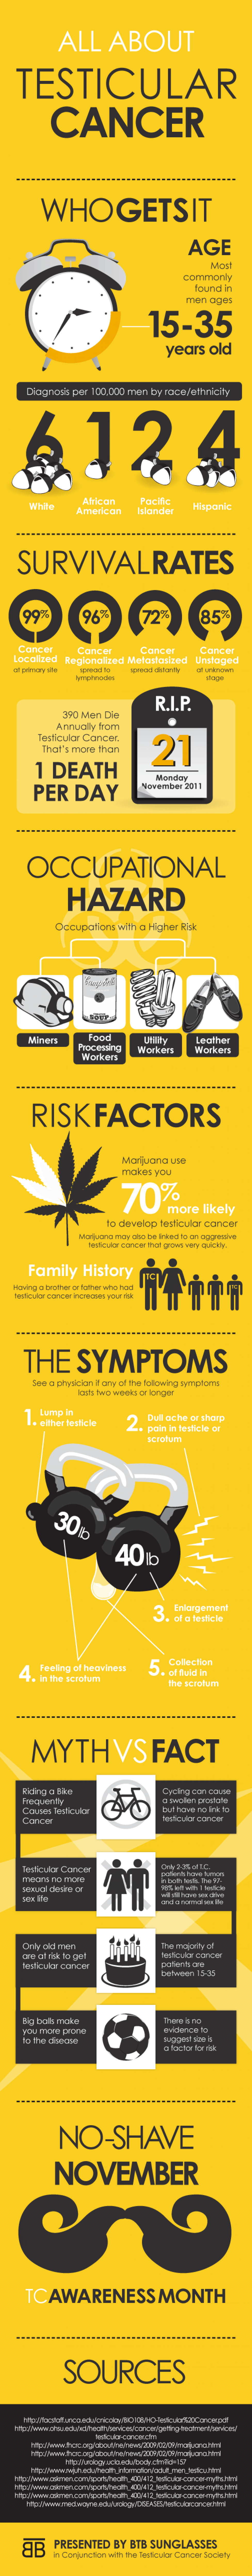 All About Testicular Cancer Infographic